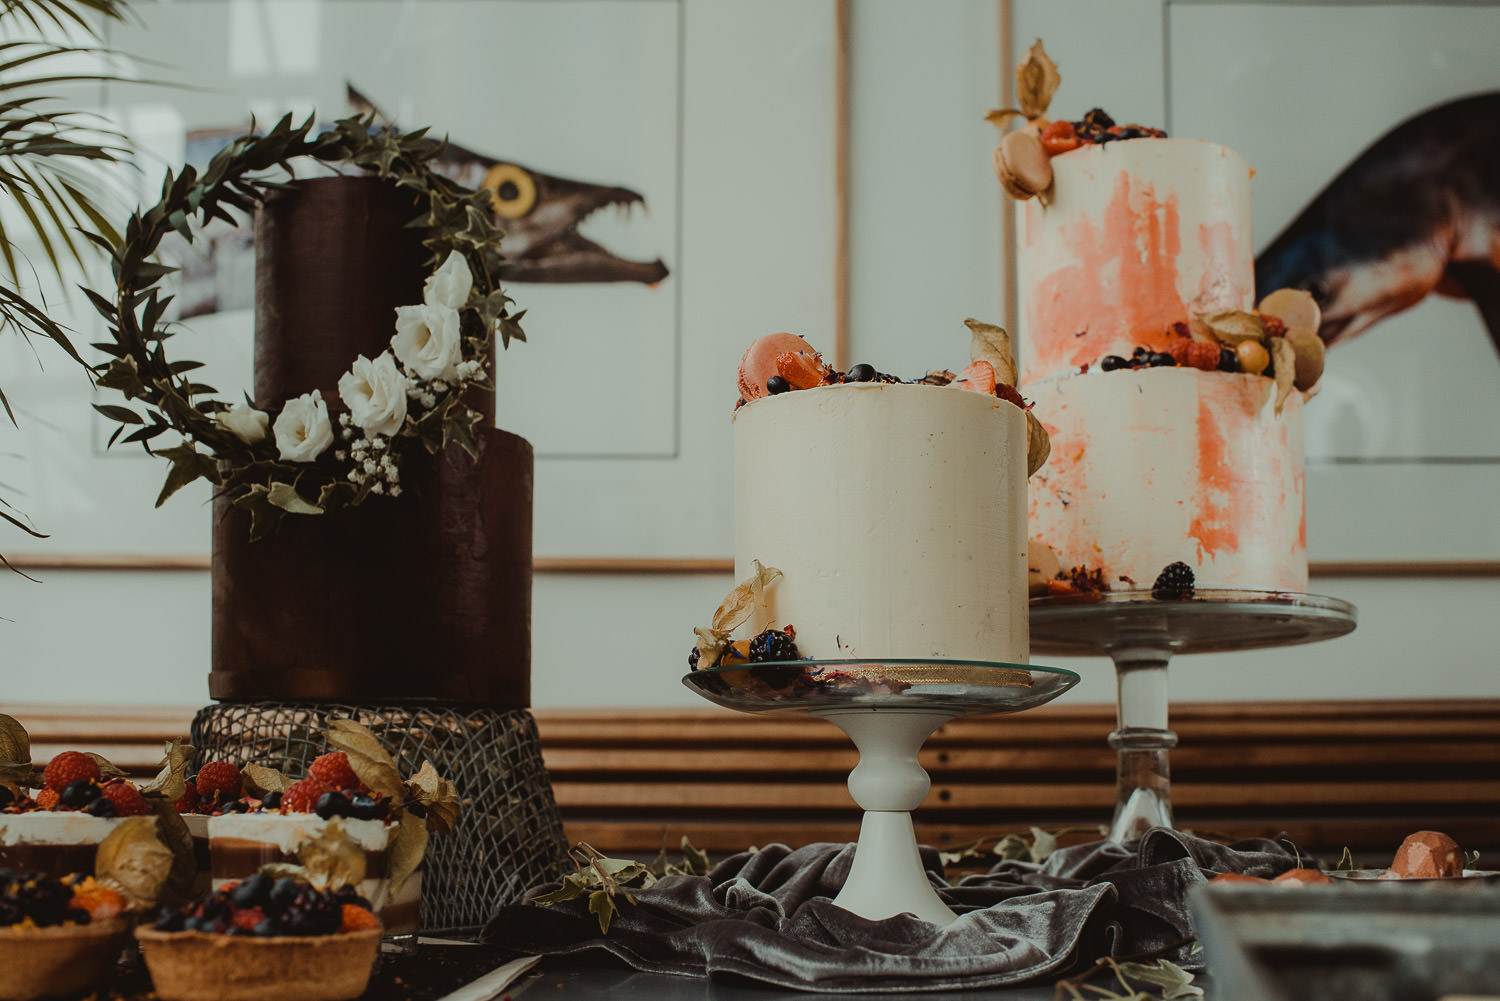 BAAD - Chocolate Ganache and Buttercream Wedding Cakes - with Martin Venherm Photography and the Little White Cow decor